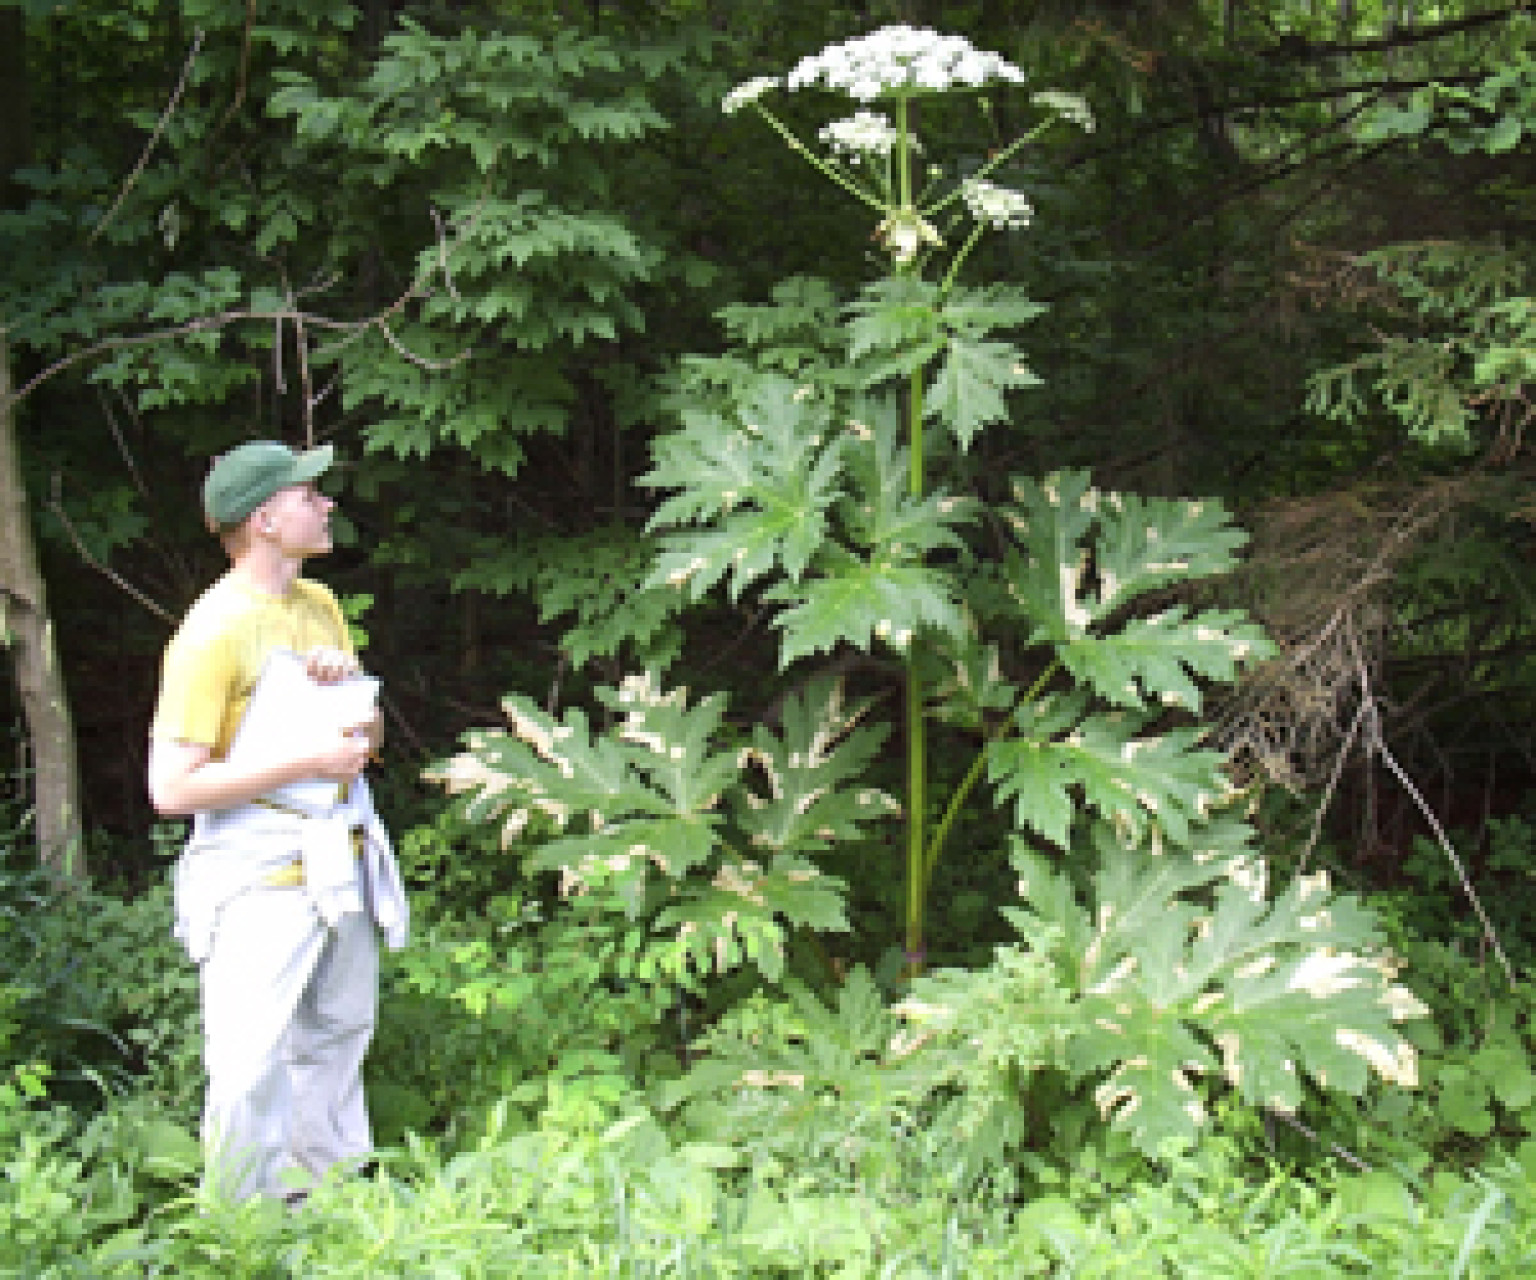 Umbrella Plant Toxic: Giant Hogweed Plant May Cause Blindness, Severe Skin